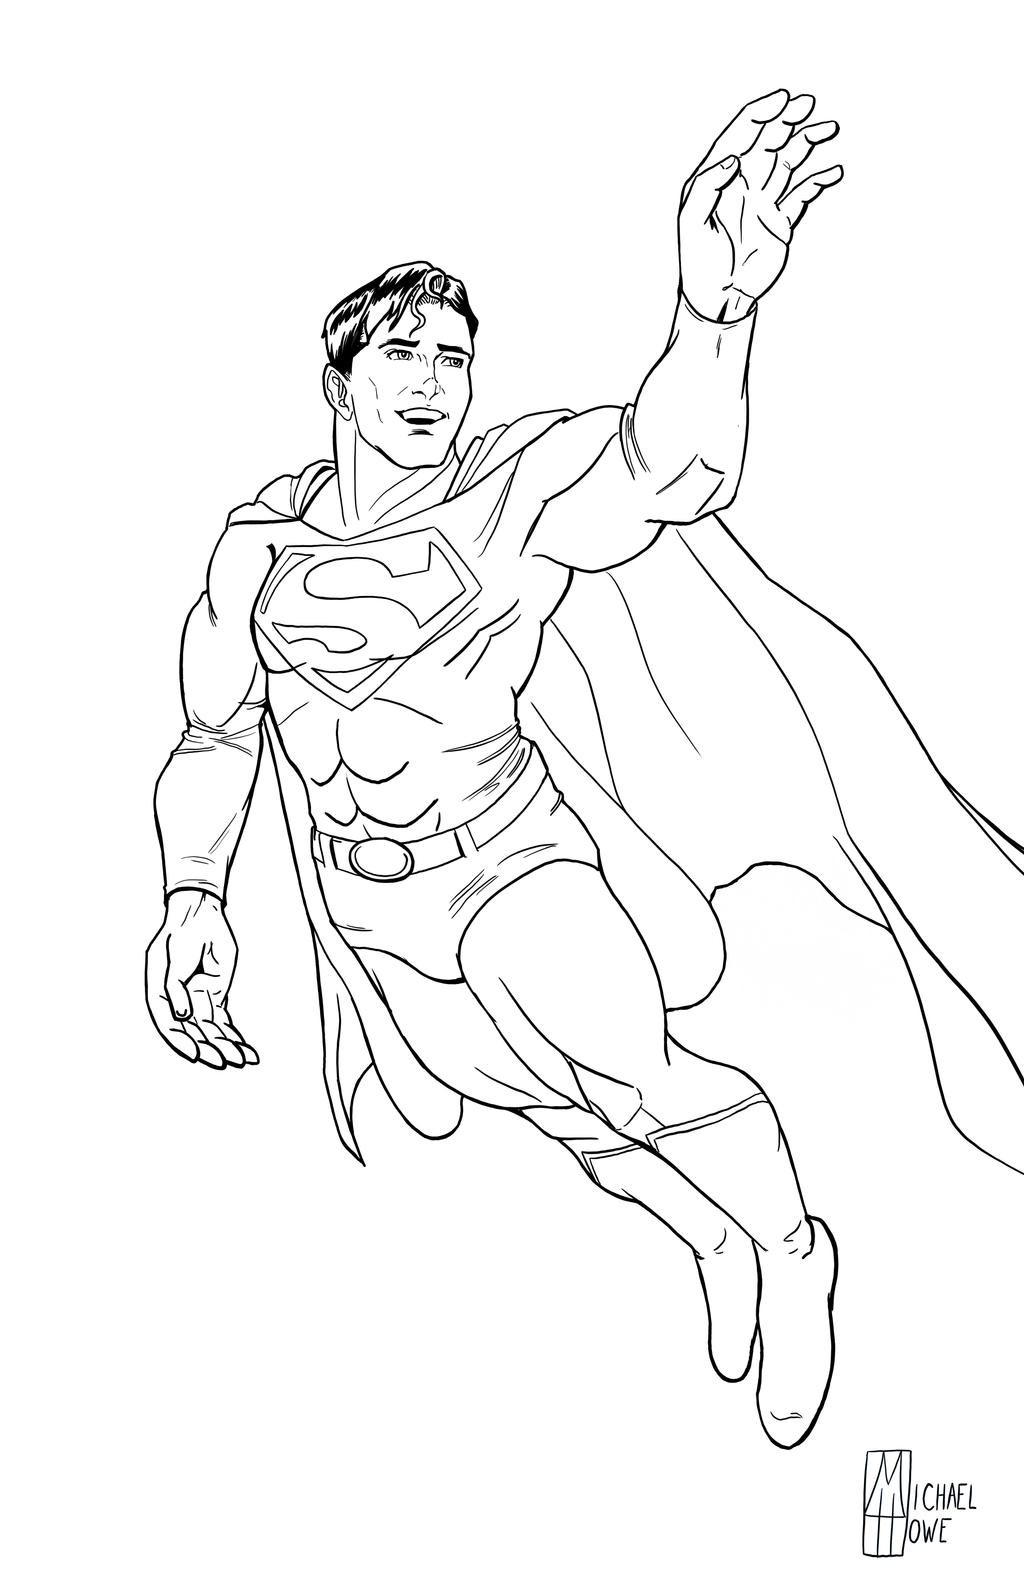 superman s coloring pages superman 3 coloring page free coloring pages online s coloring pages superman